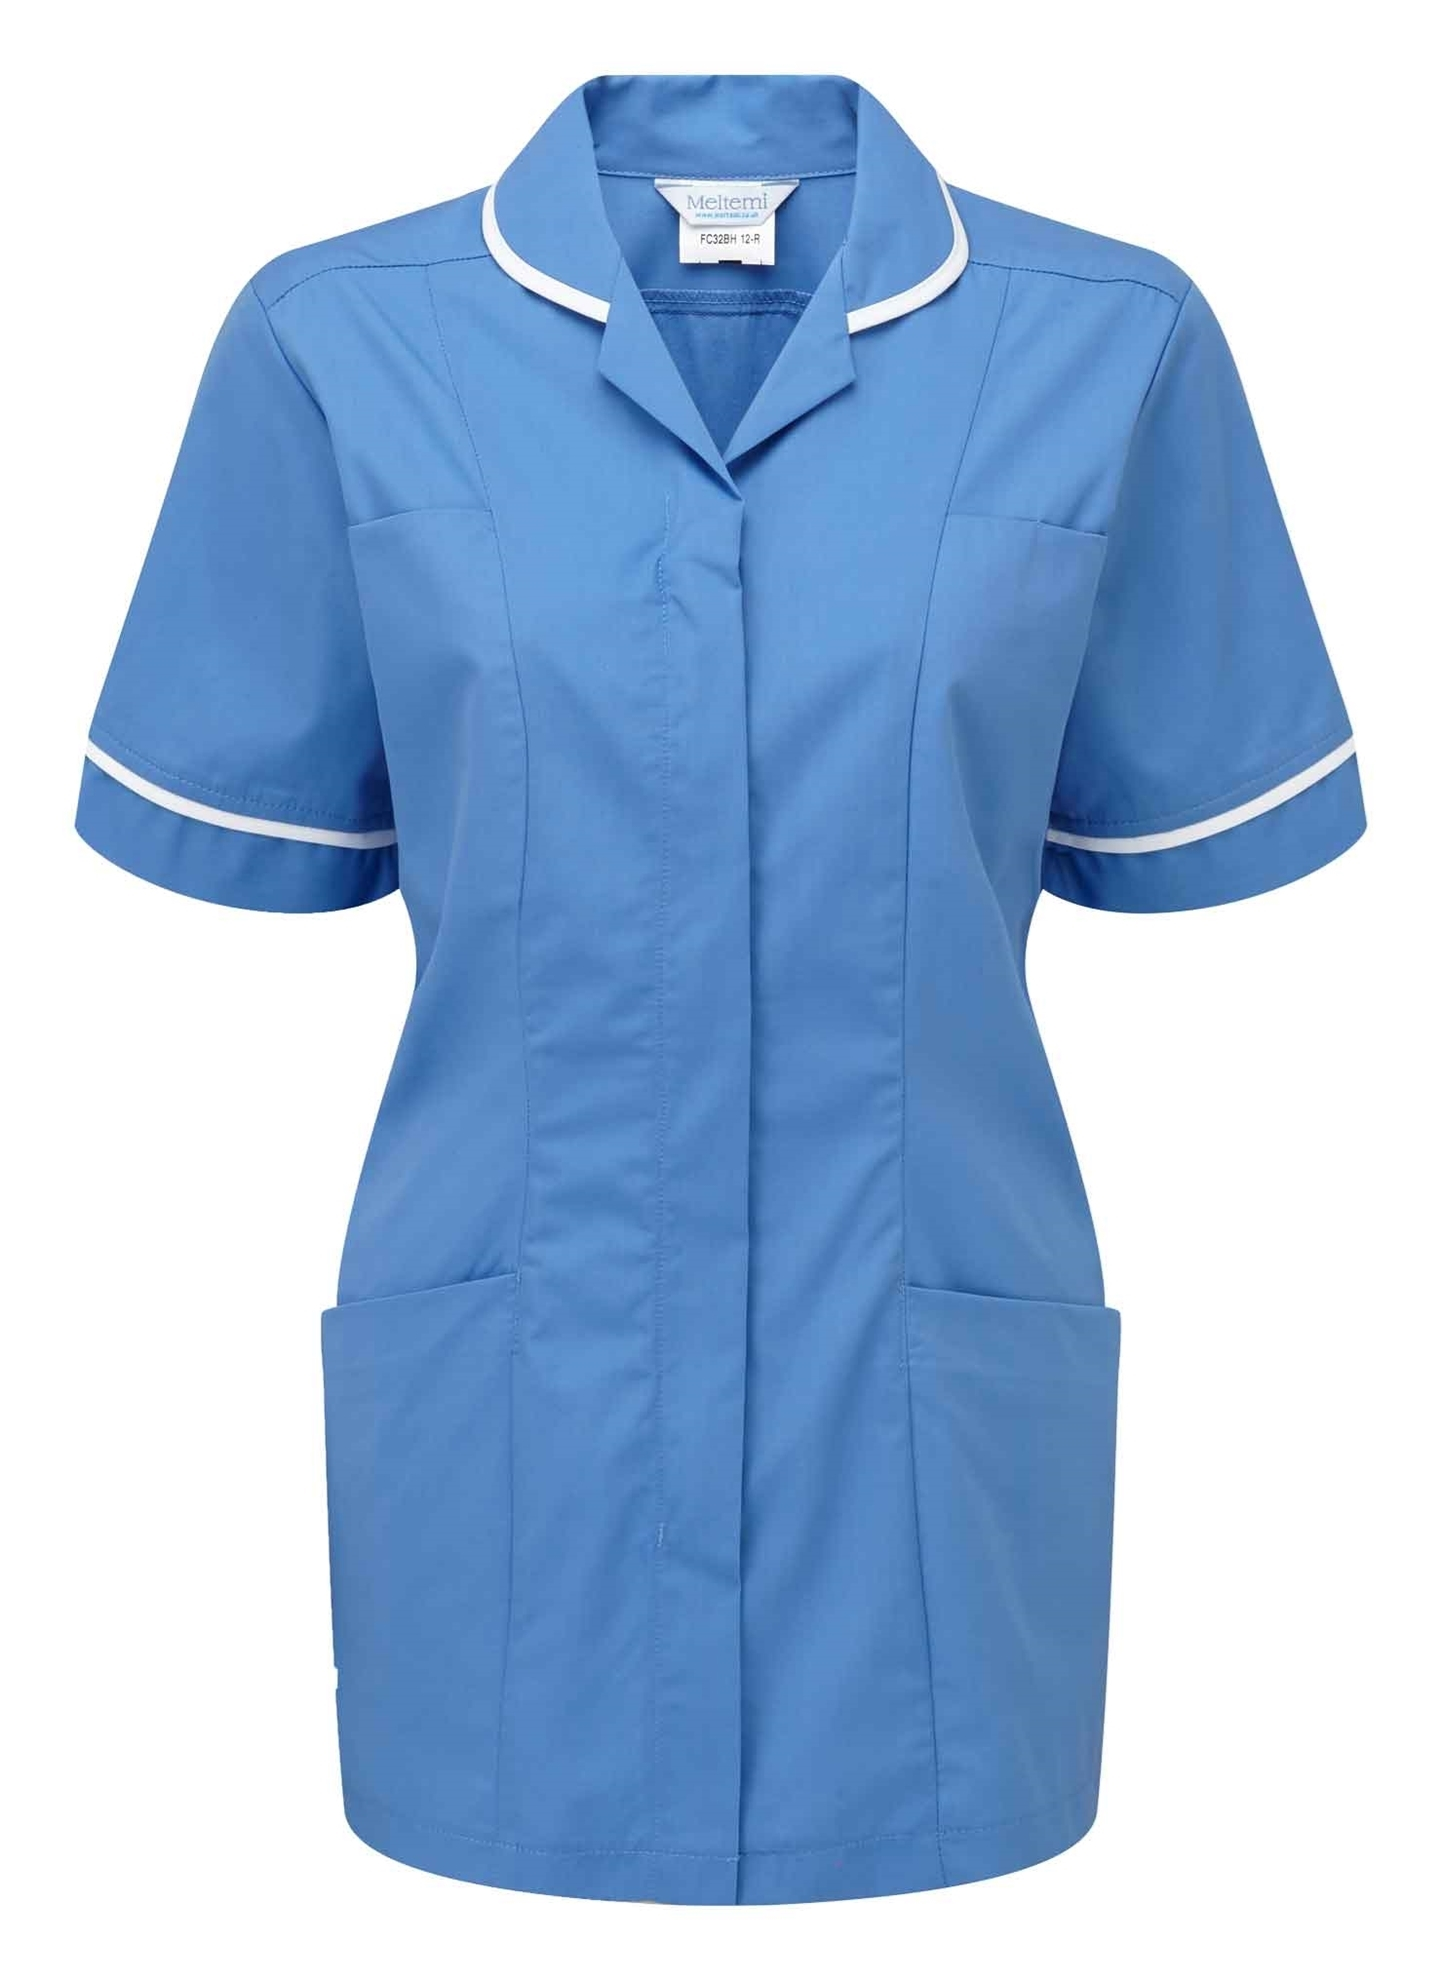 Picture of Lightweight Tunic - Hospital Blue/White